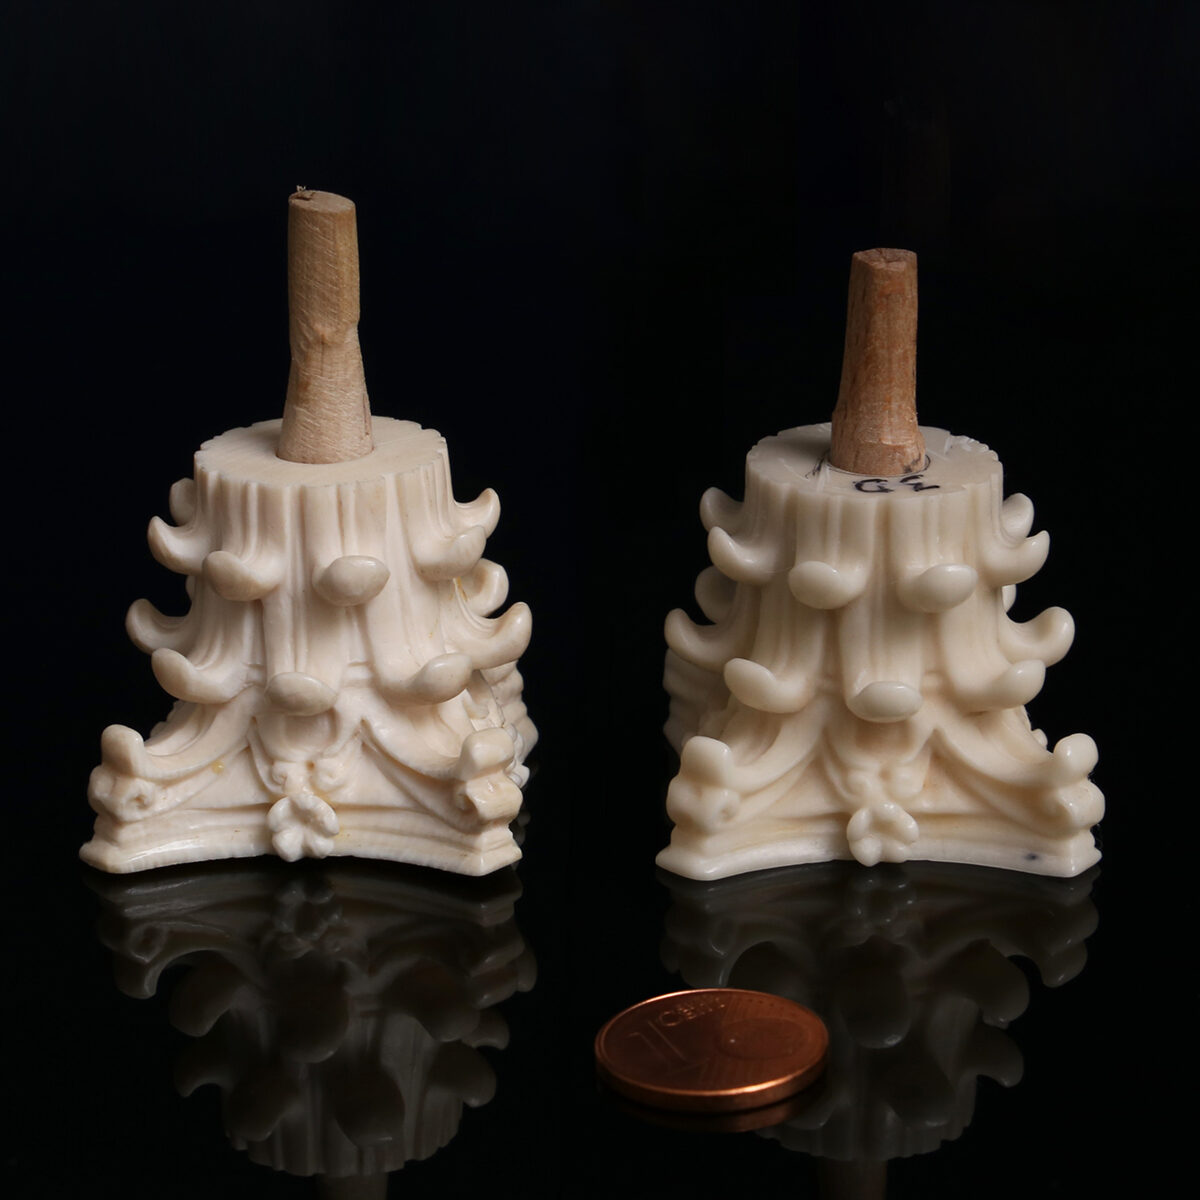 On the right: The new material Digory, ivory on the left. Image credit : TU Wien.